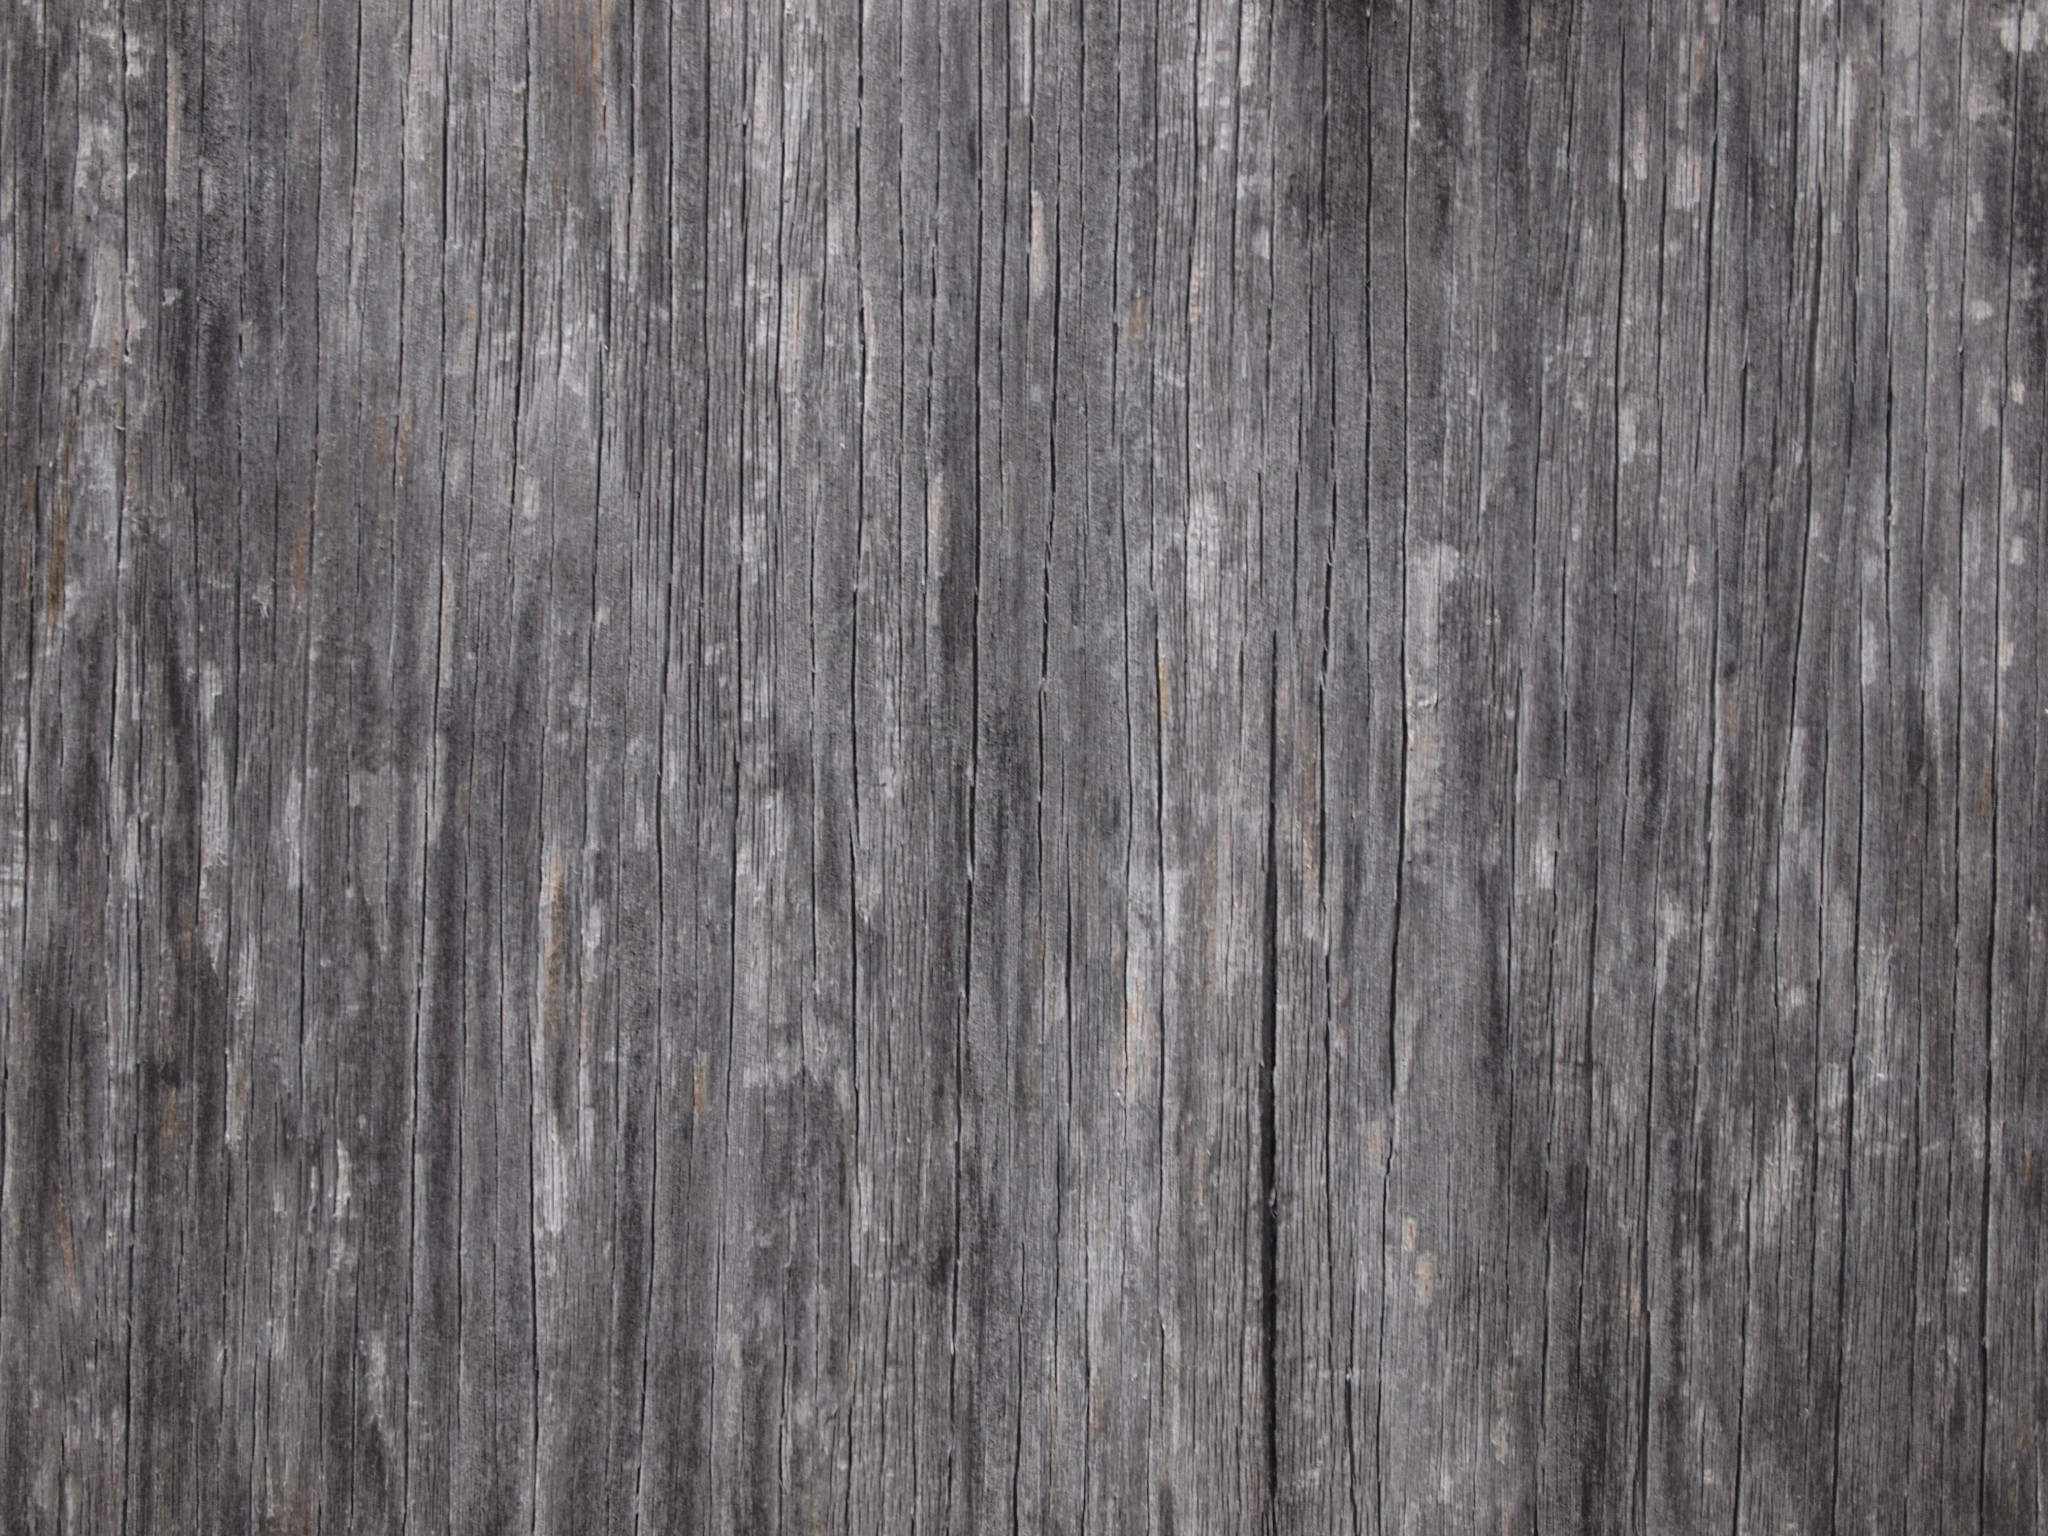 2048x1536 wood wallpaper for desktop background